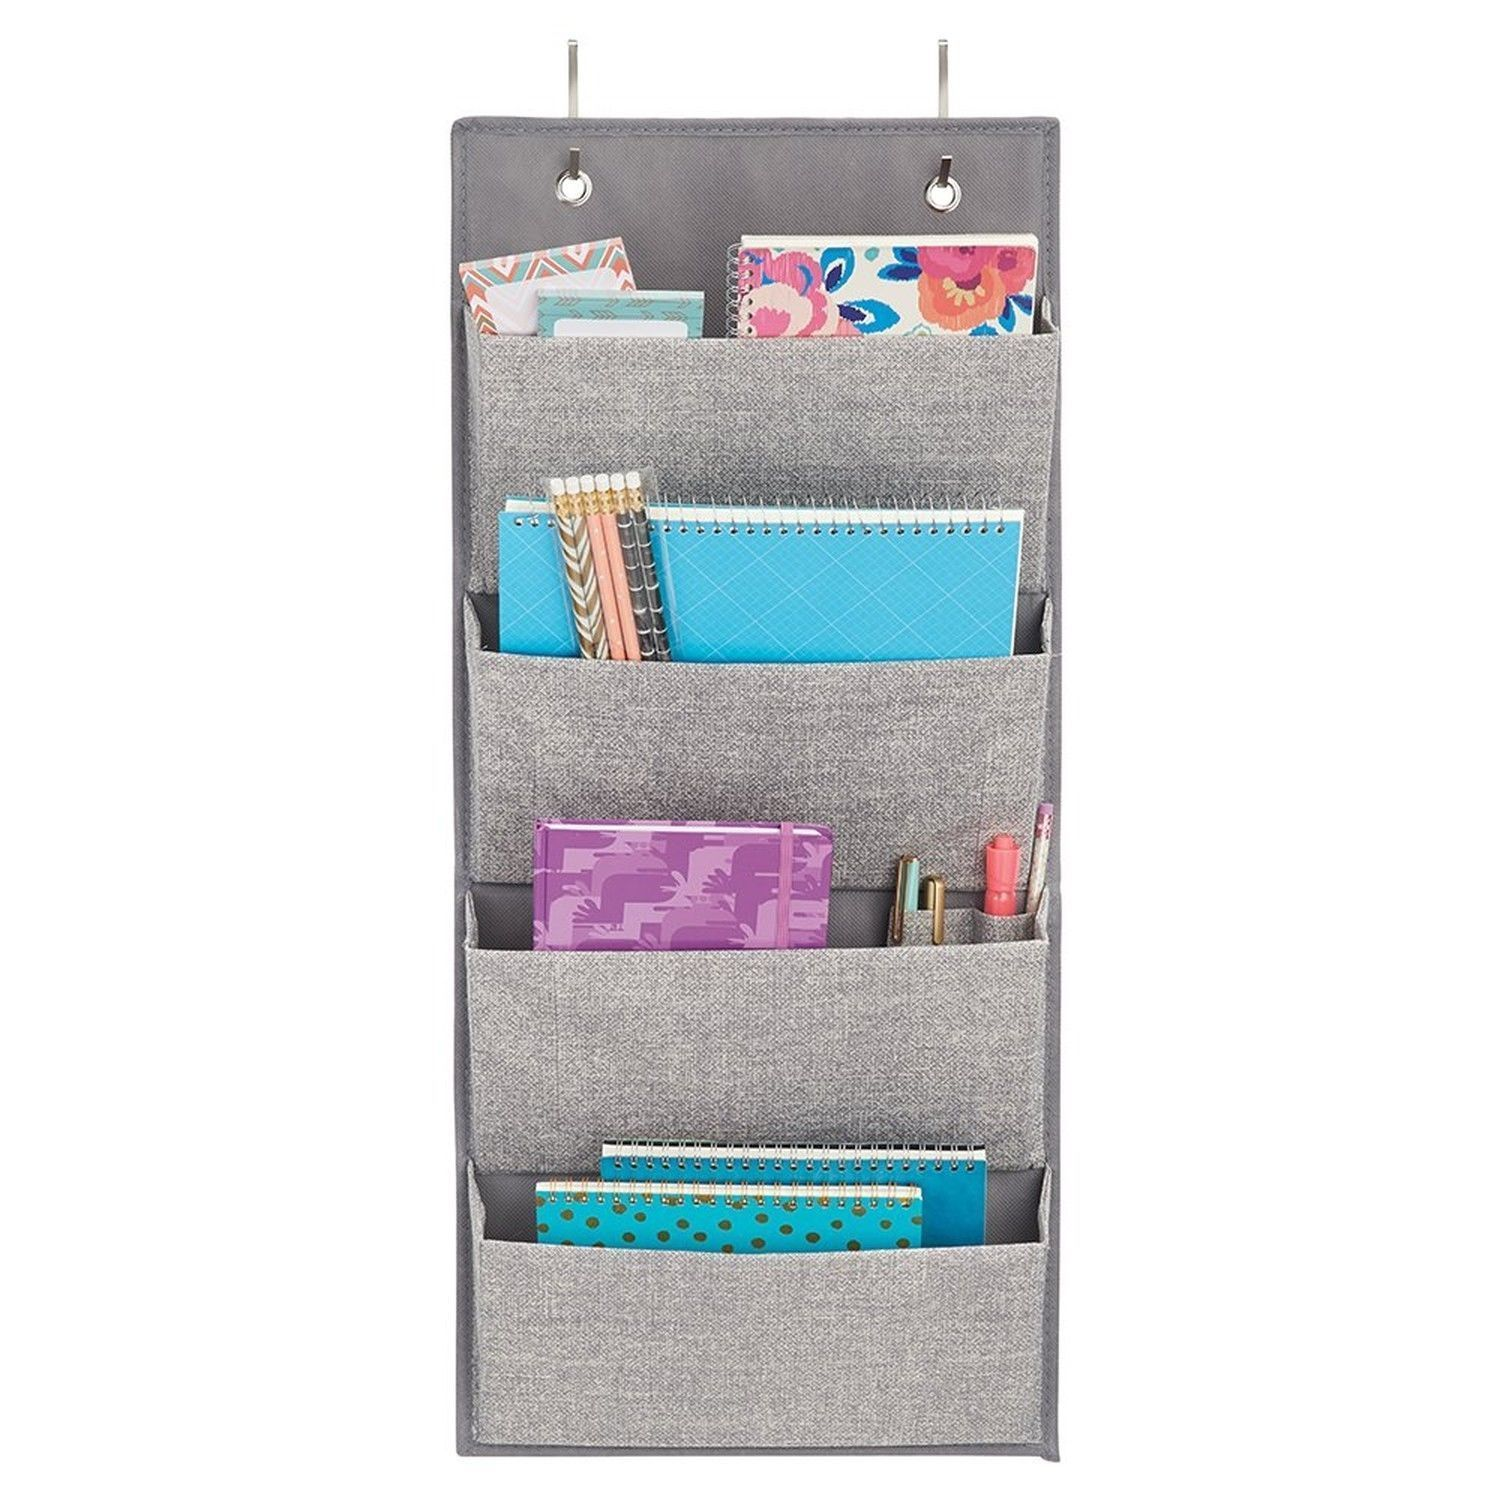 InterDesign Wall Mount/Over the Door Fabric Office Supplies Storage Organizer